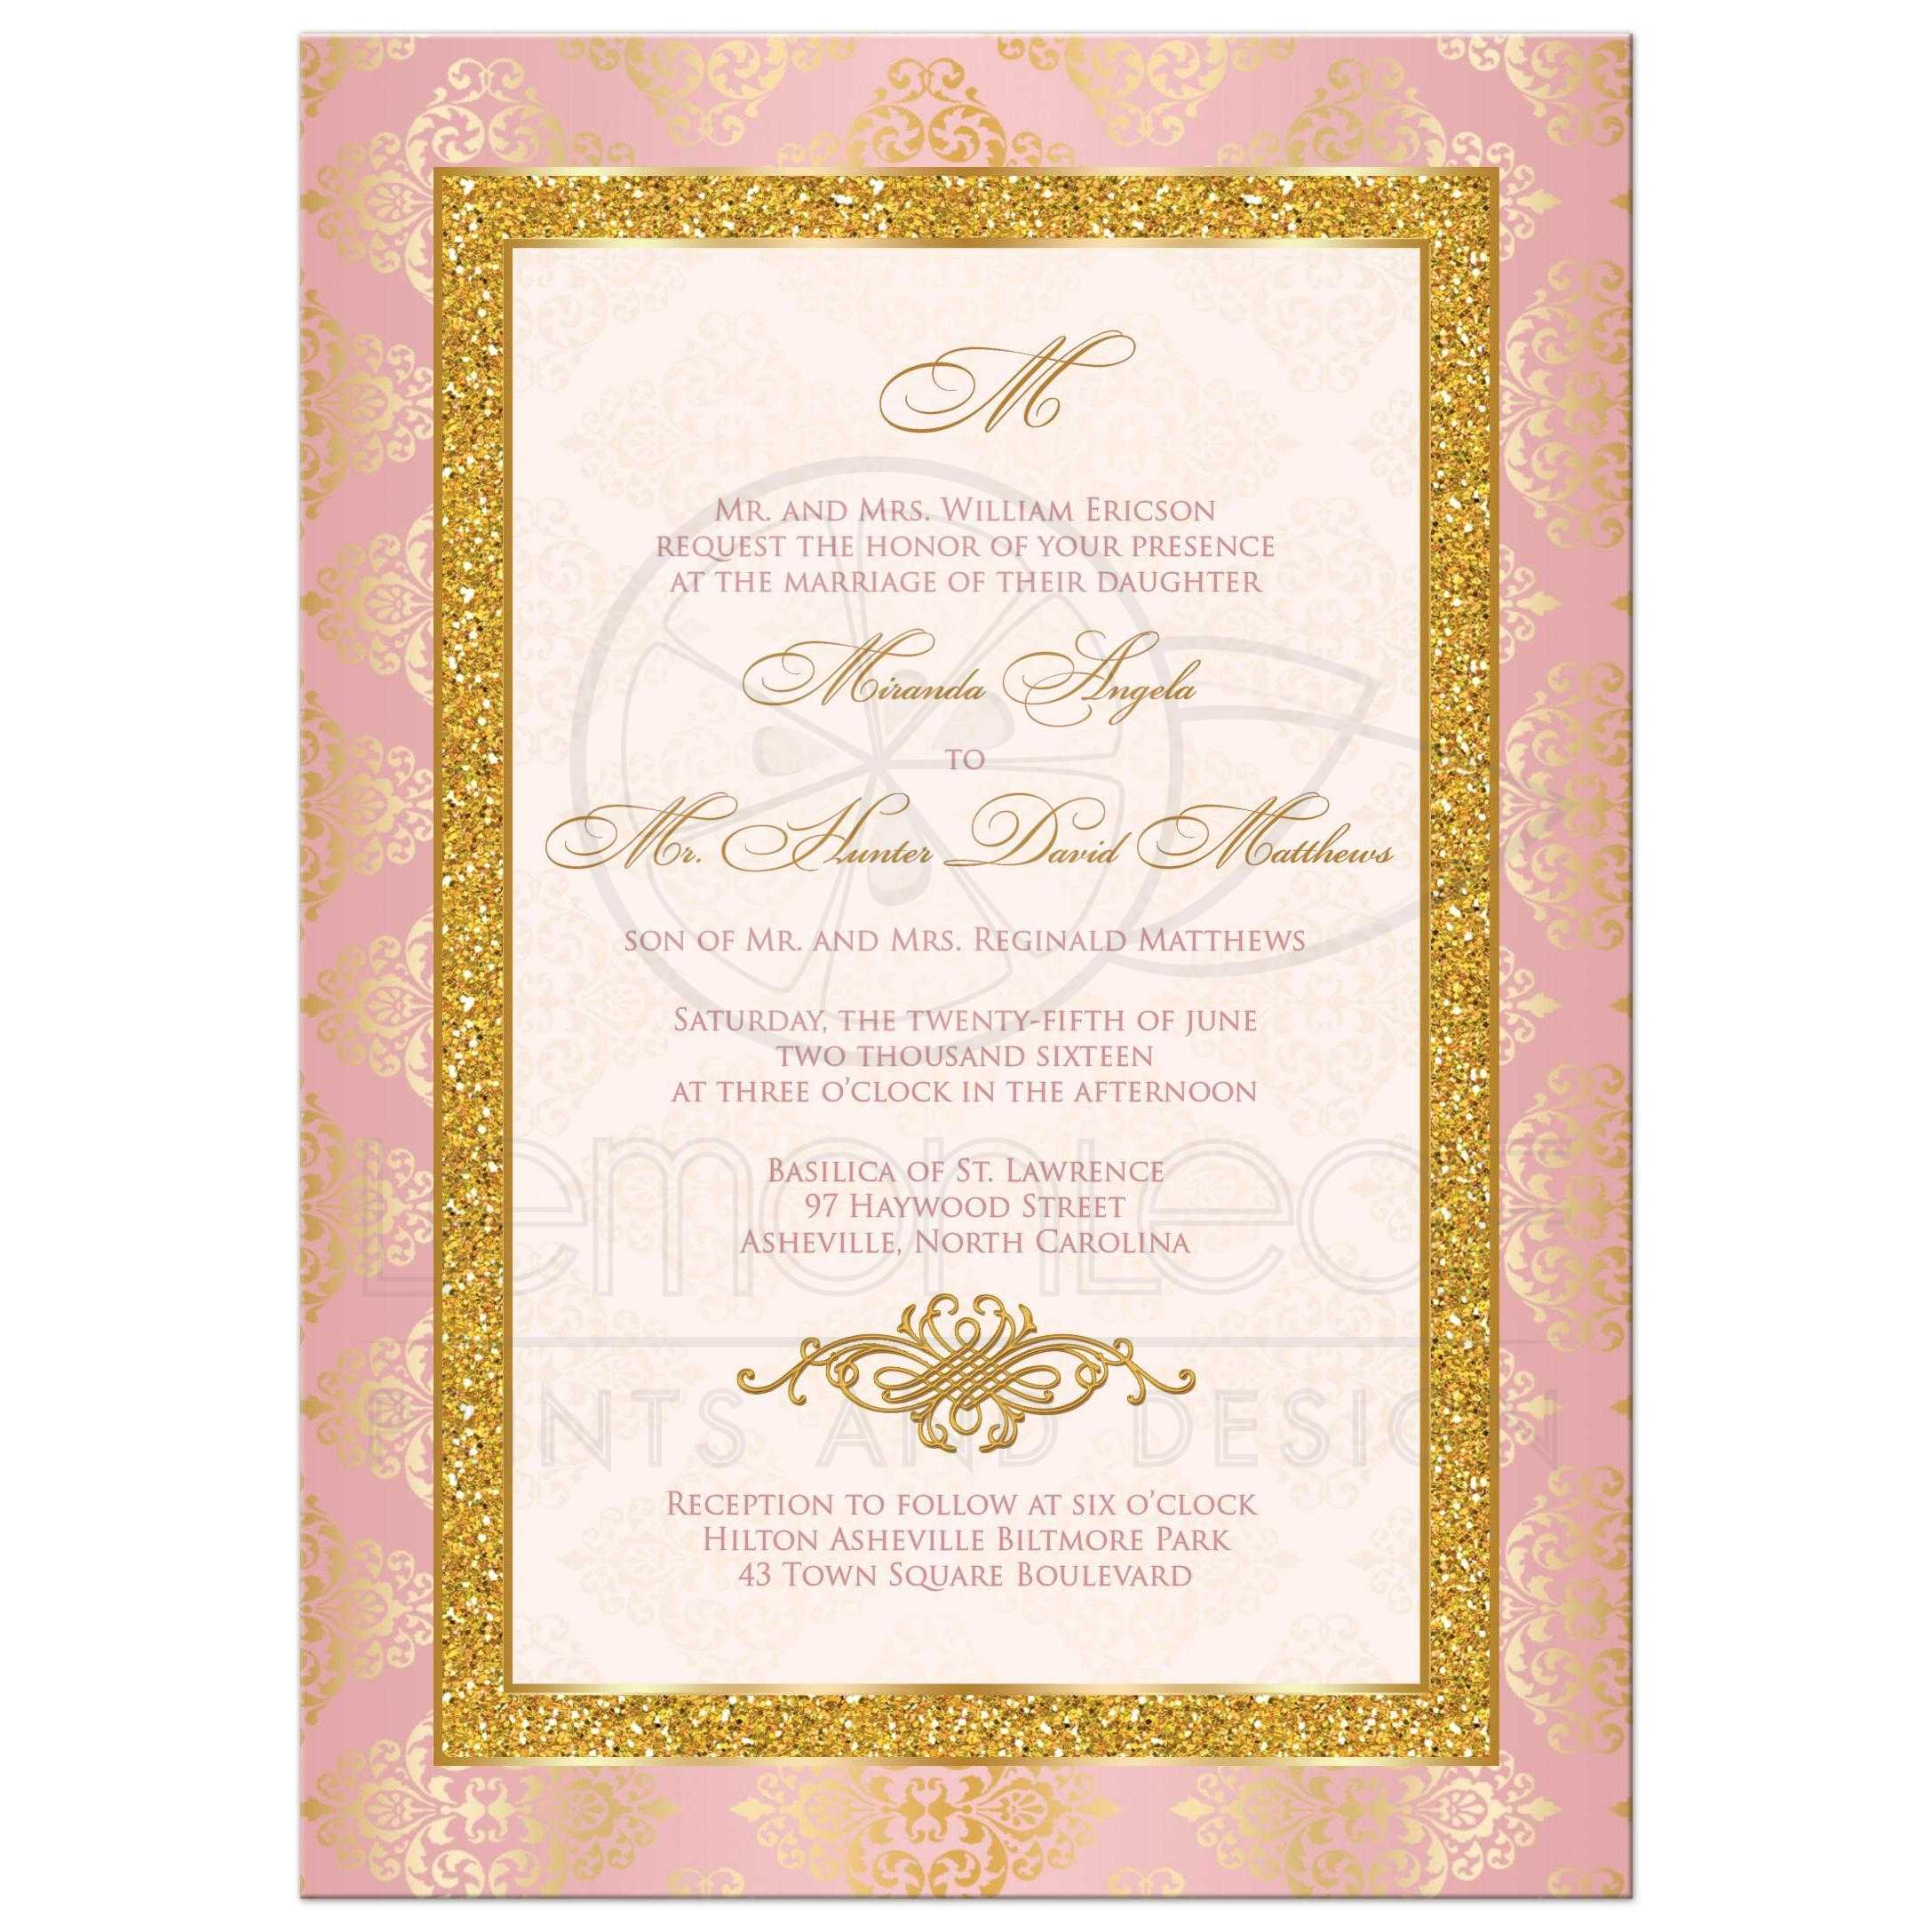 Blush Pink Ivory And Gold Damask Wedding Invitation